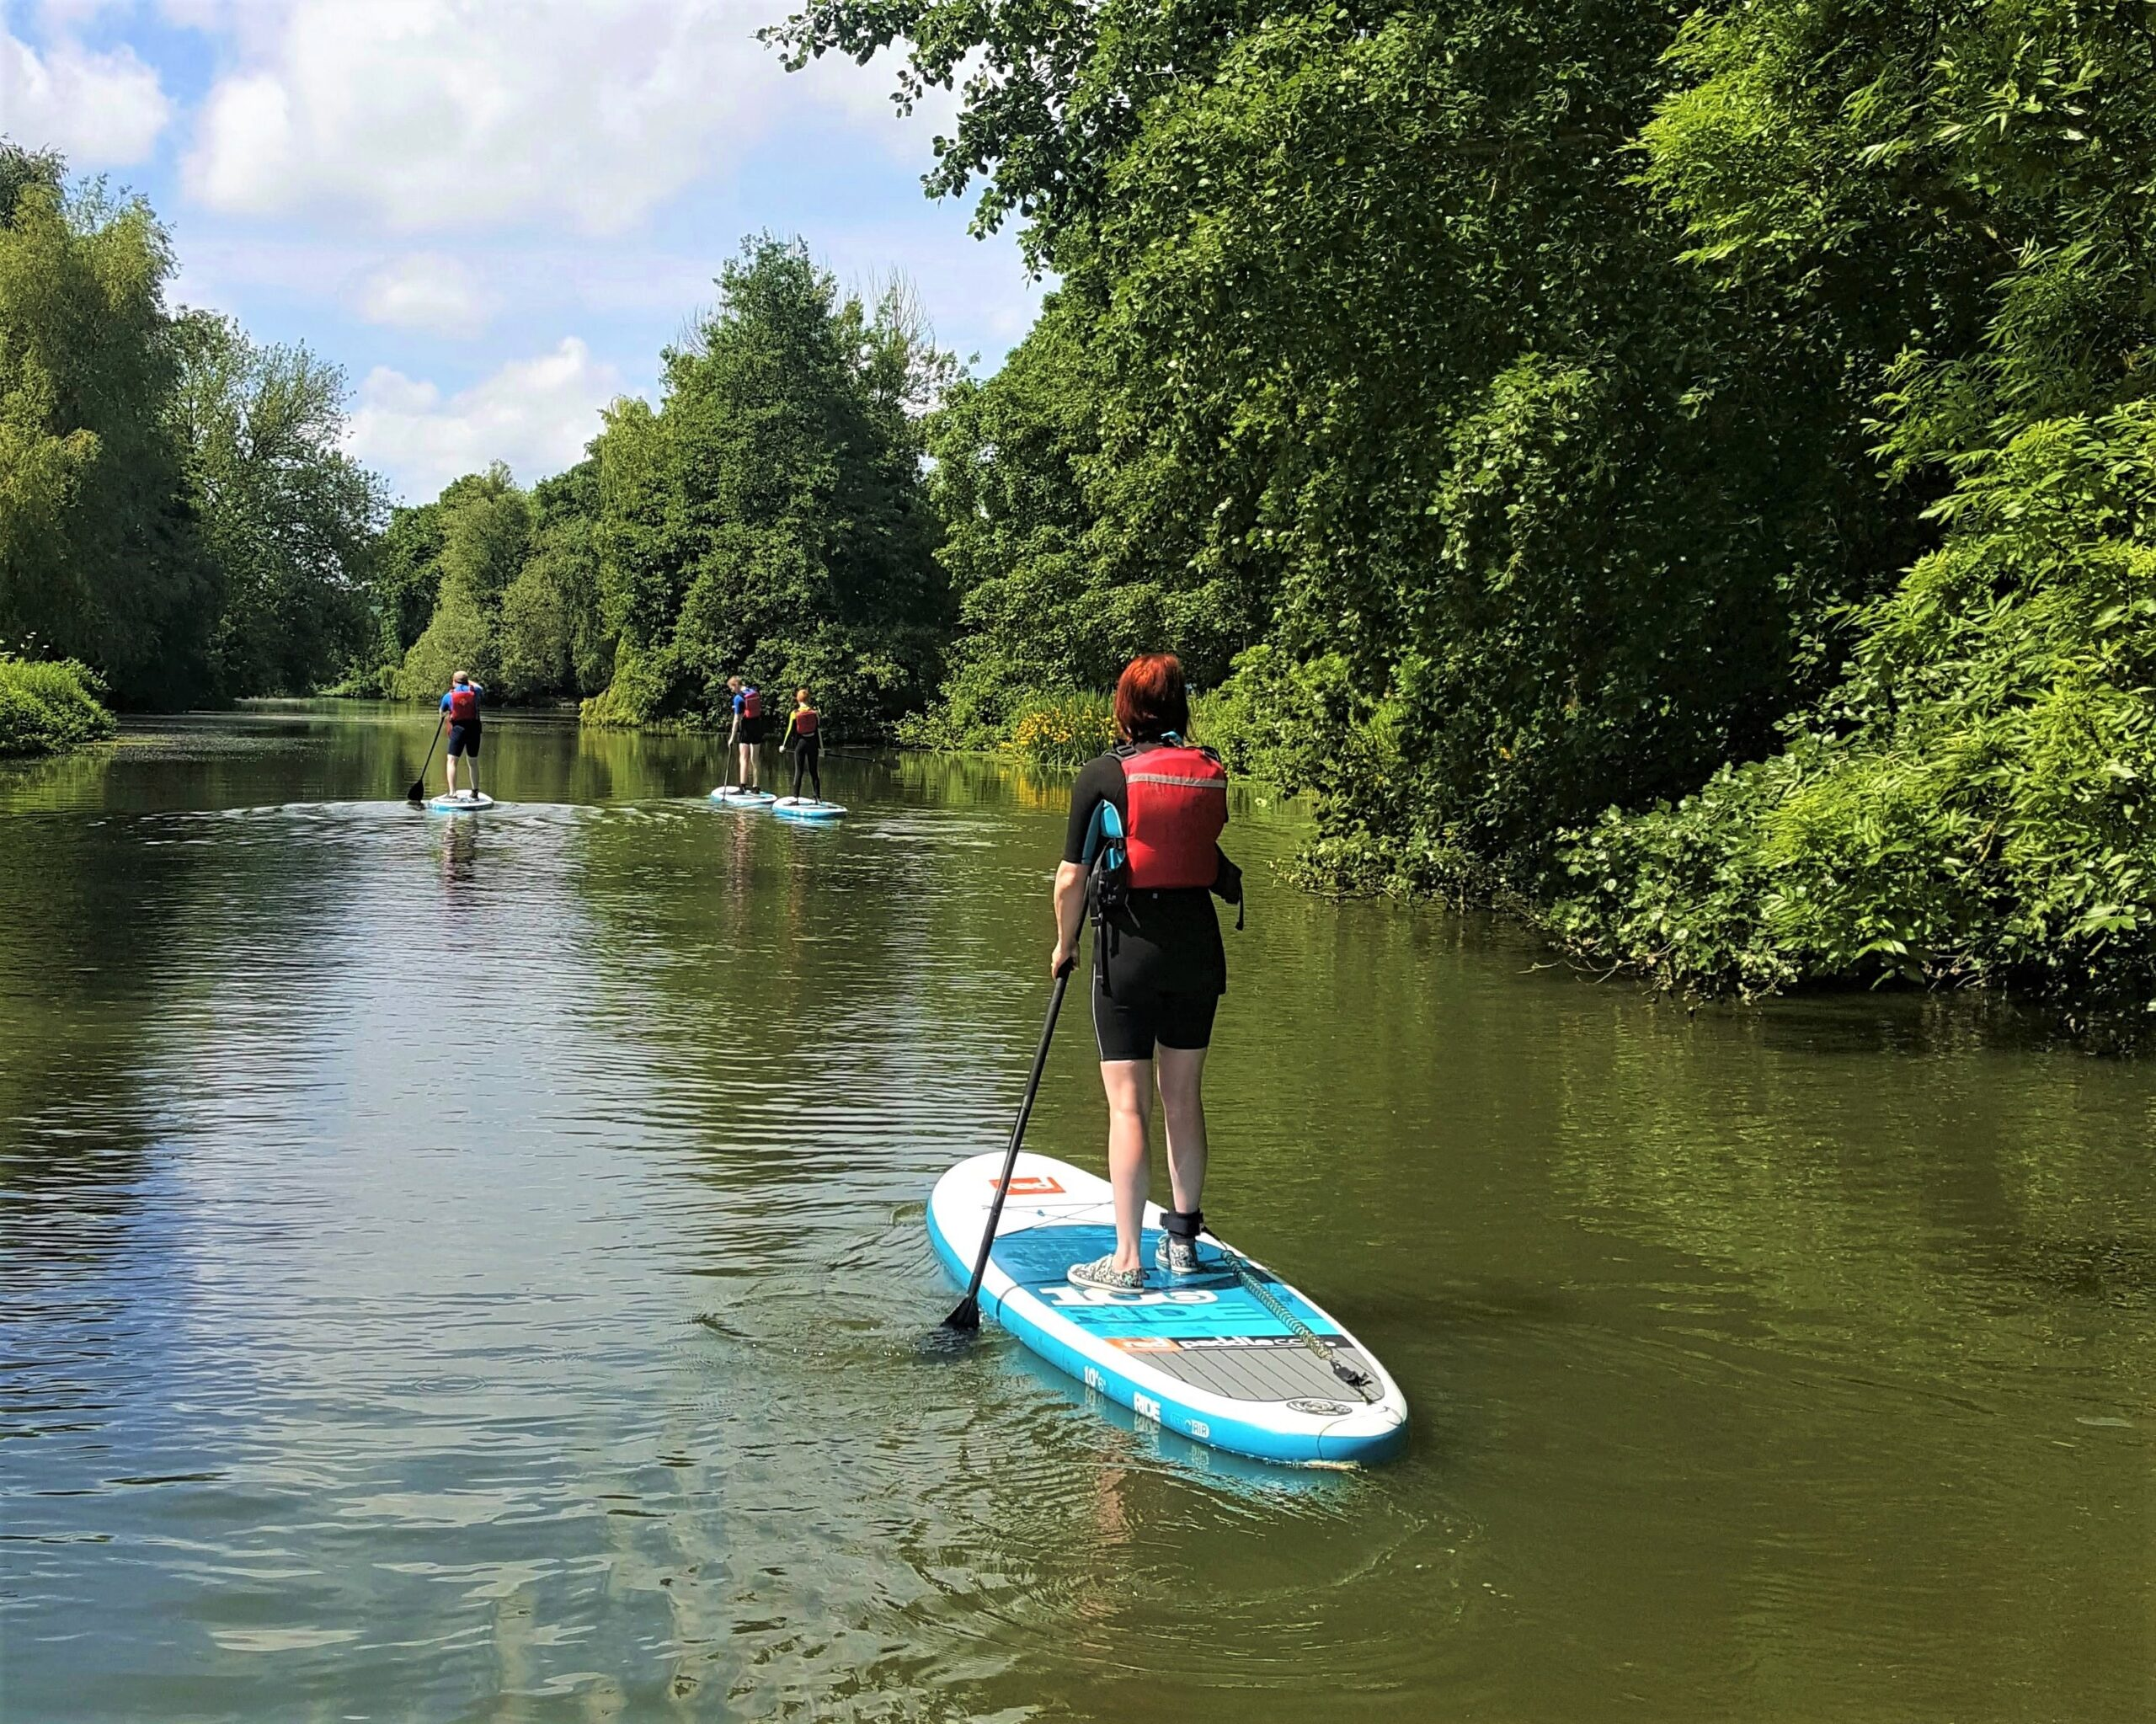 Family SUP lesson in Wawrickshire